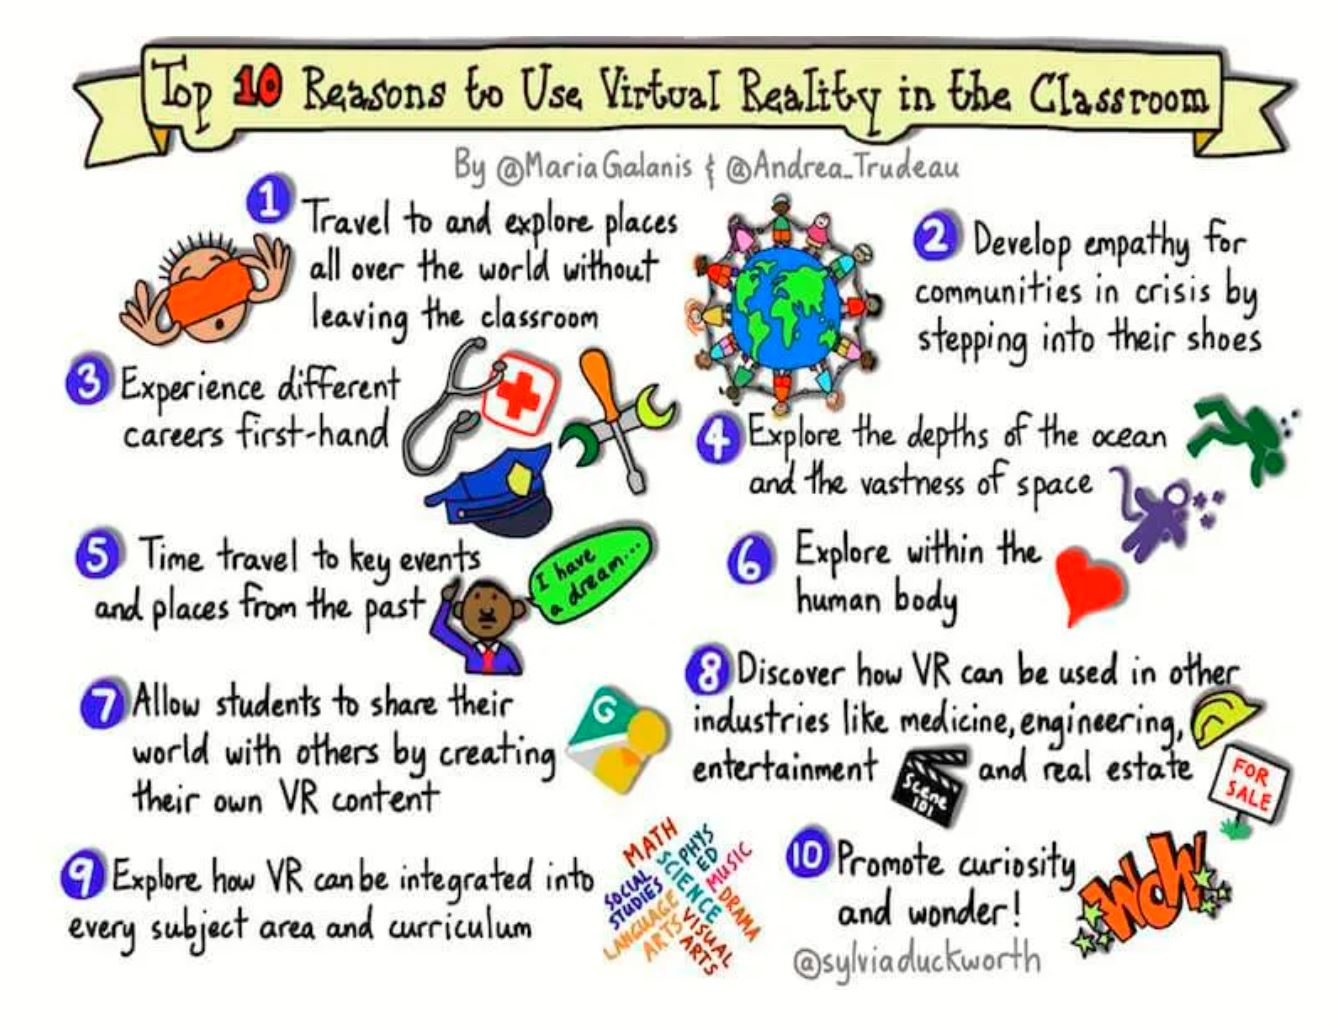 Top 10 Reasons To Use Virtual Reality In The Classroom